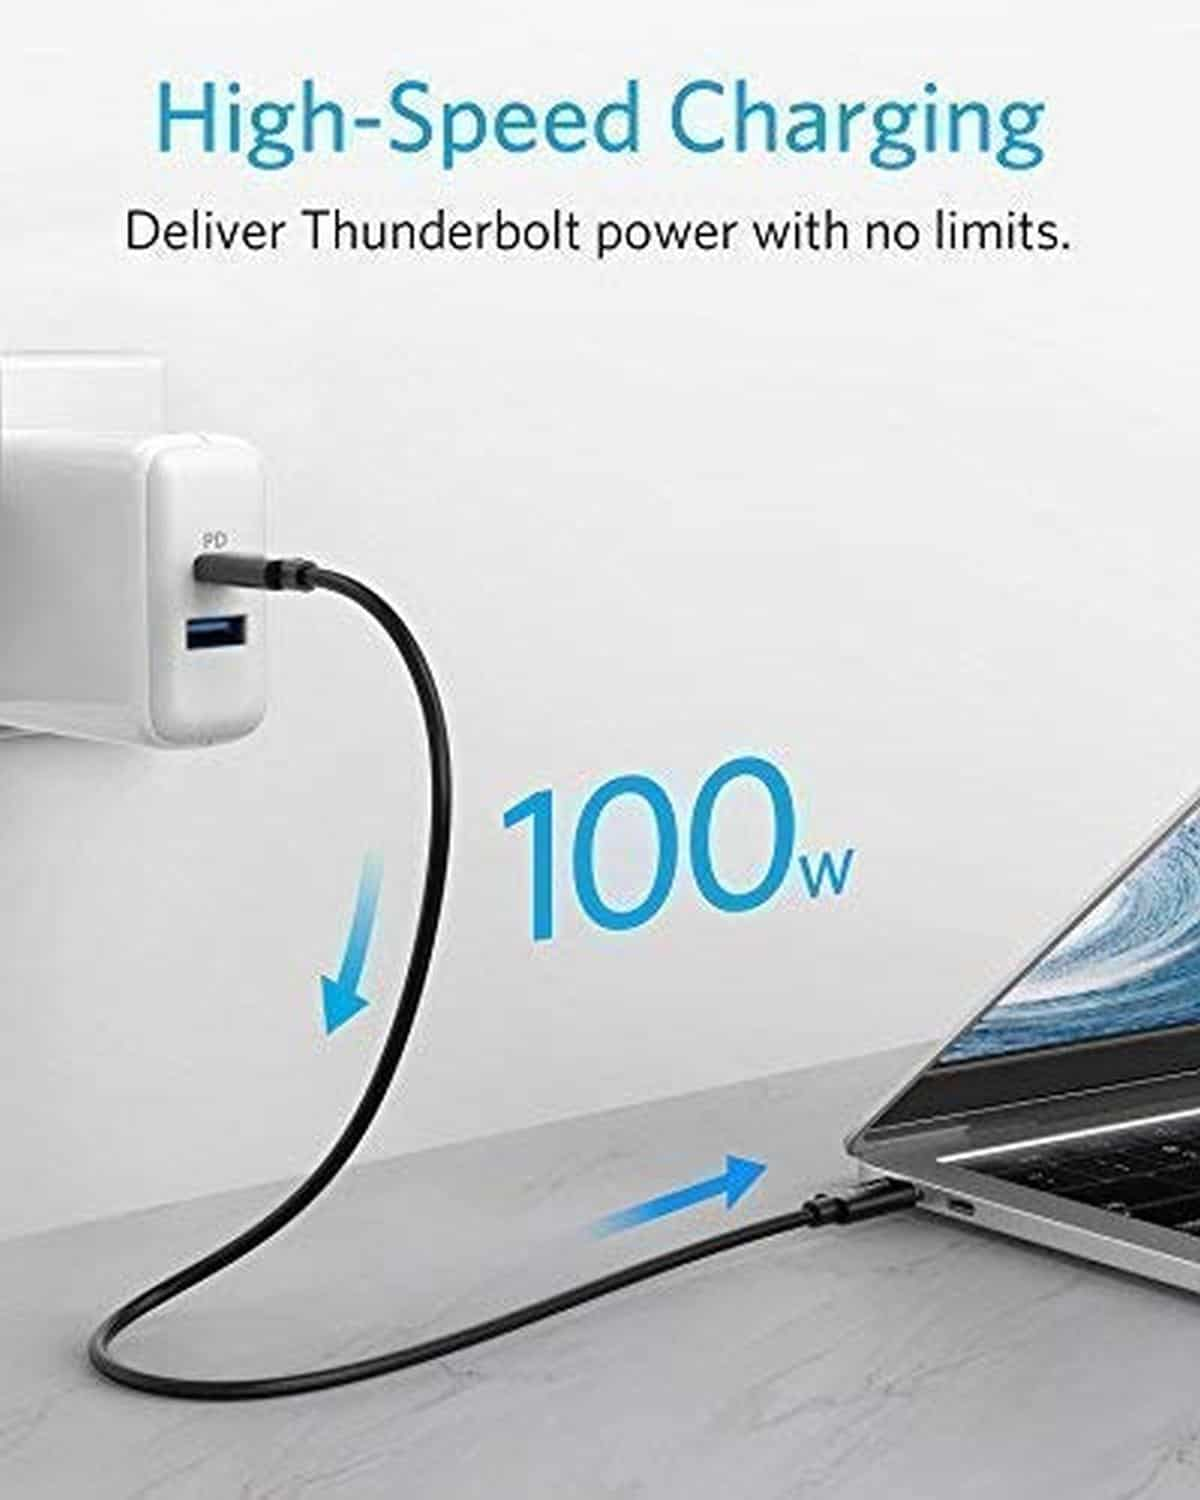 Anker USB-C to USB-C Thunderbolt 3.0 Cable | Best Macbook Accessories for 2019